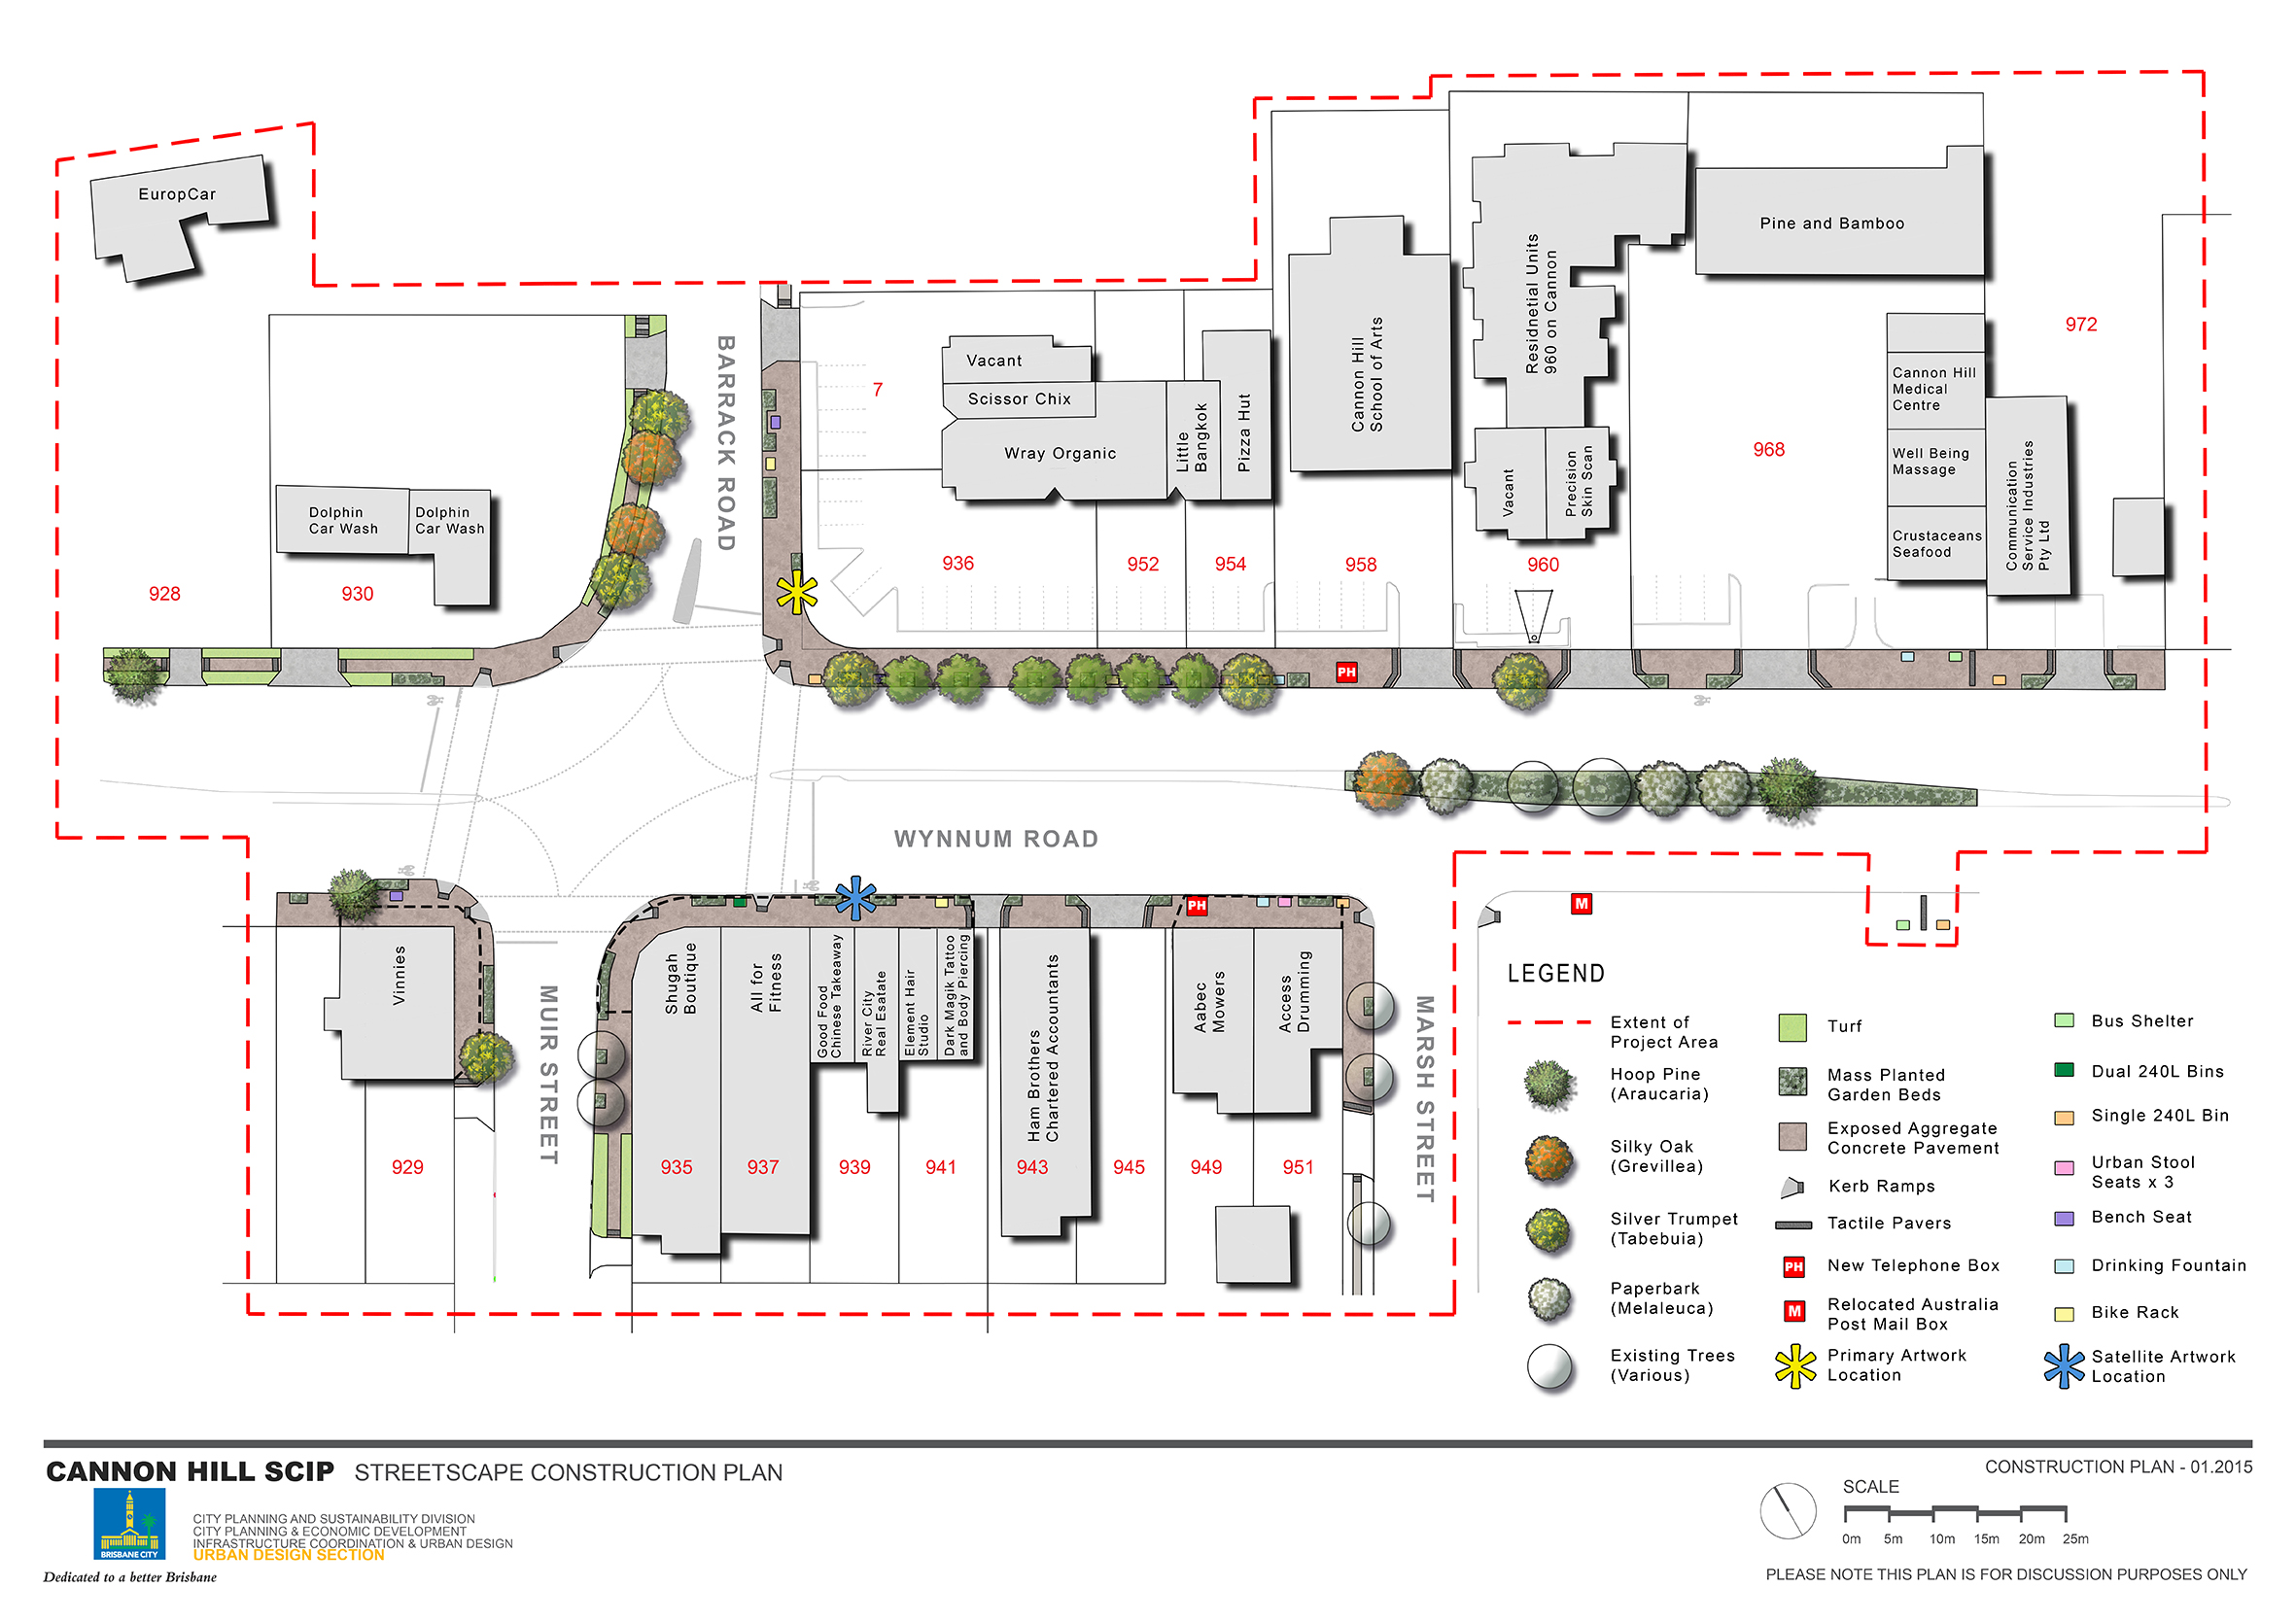 Construction Plan for the Cannon Hill SCIP